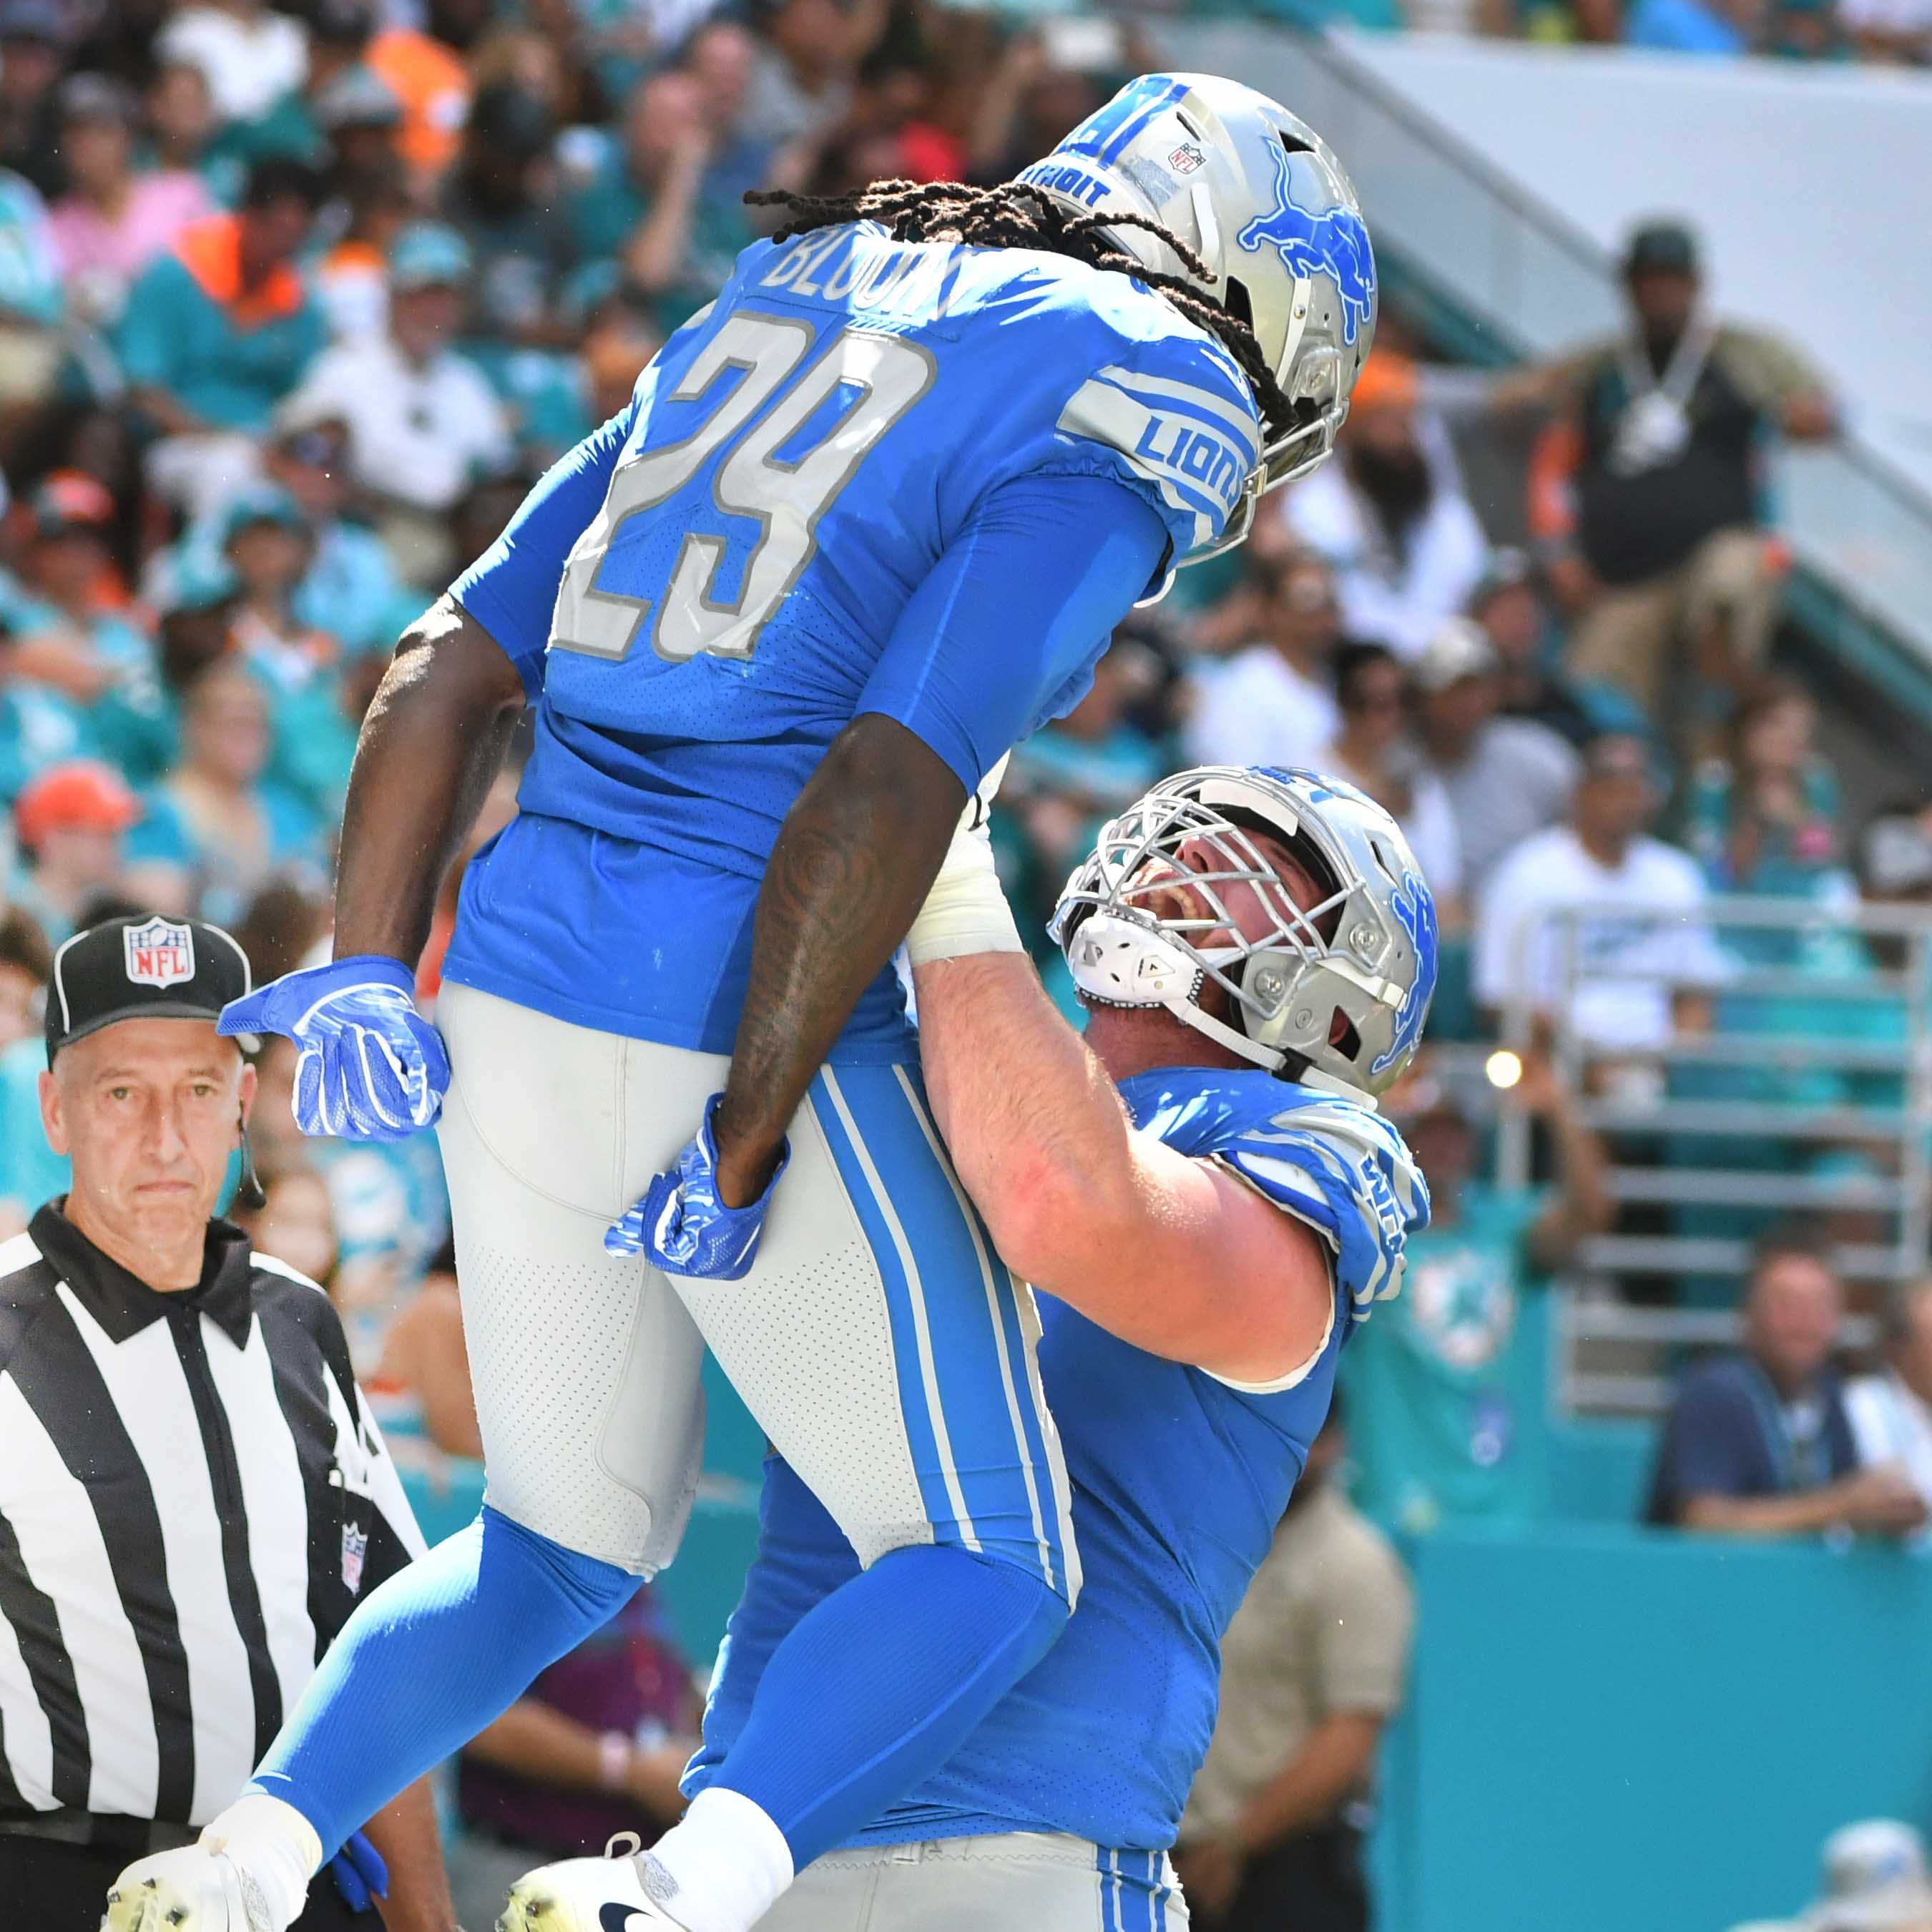 Miami nice! Lions claw back to .500 behind stellar ground game